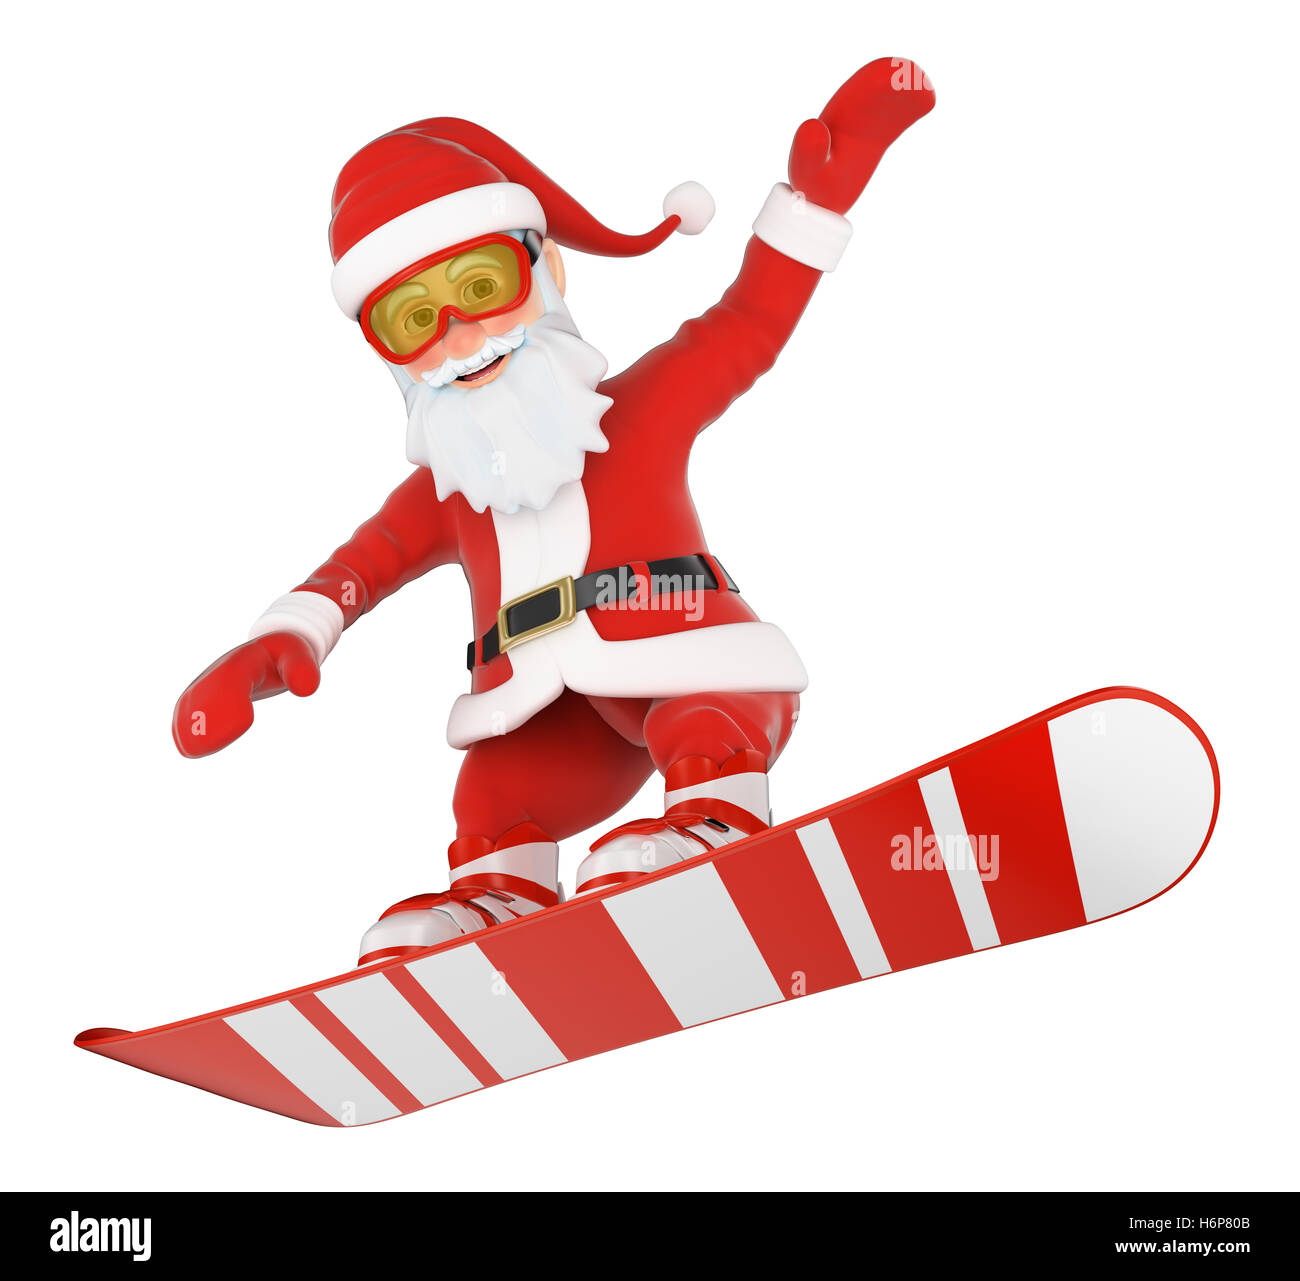 3d christmas people illustration. Santa Claus snowboarding jumping. Isolated white background. - Stock Image